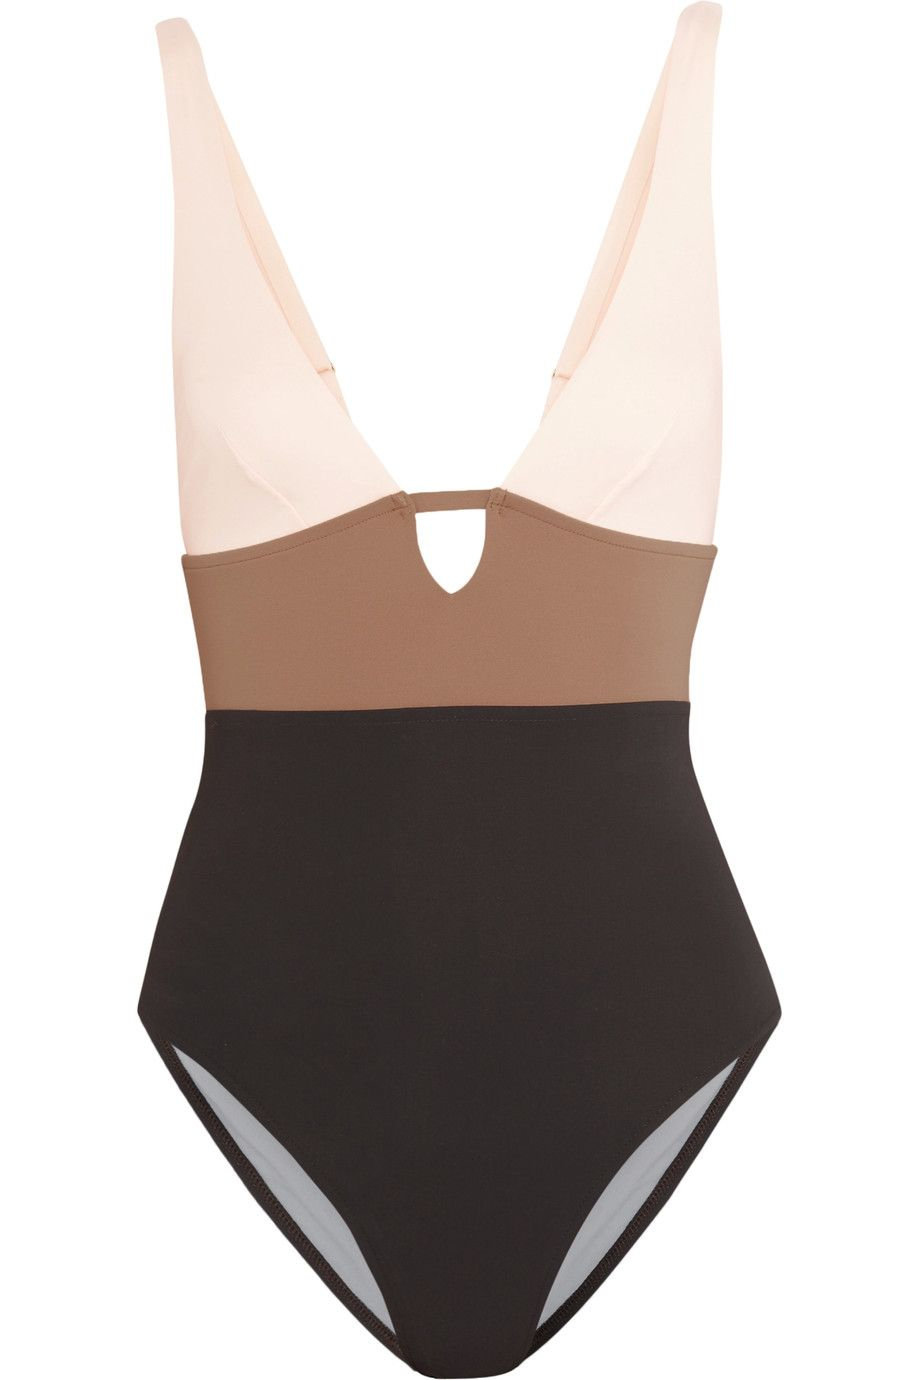 e6d8f444d45 Shop on-sale Iris and Ink Color-block cutout swimsuit. Browse other discount  designer Beachwear & more on The Most Fashionable Fashion Outlet, THE  OUTNET.